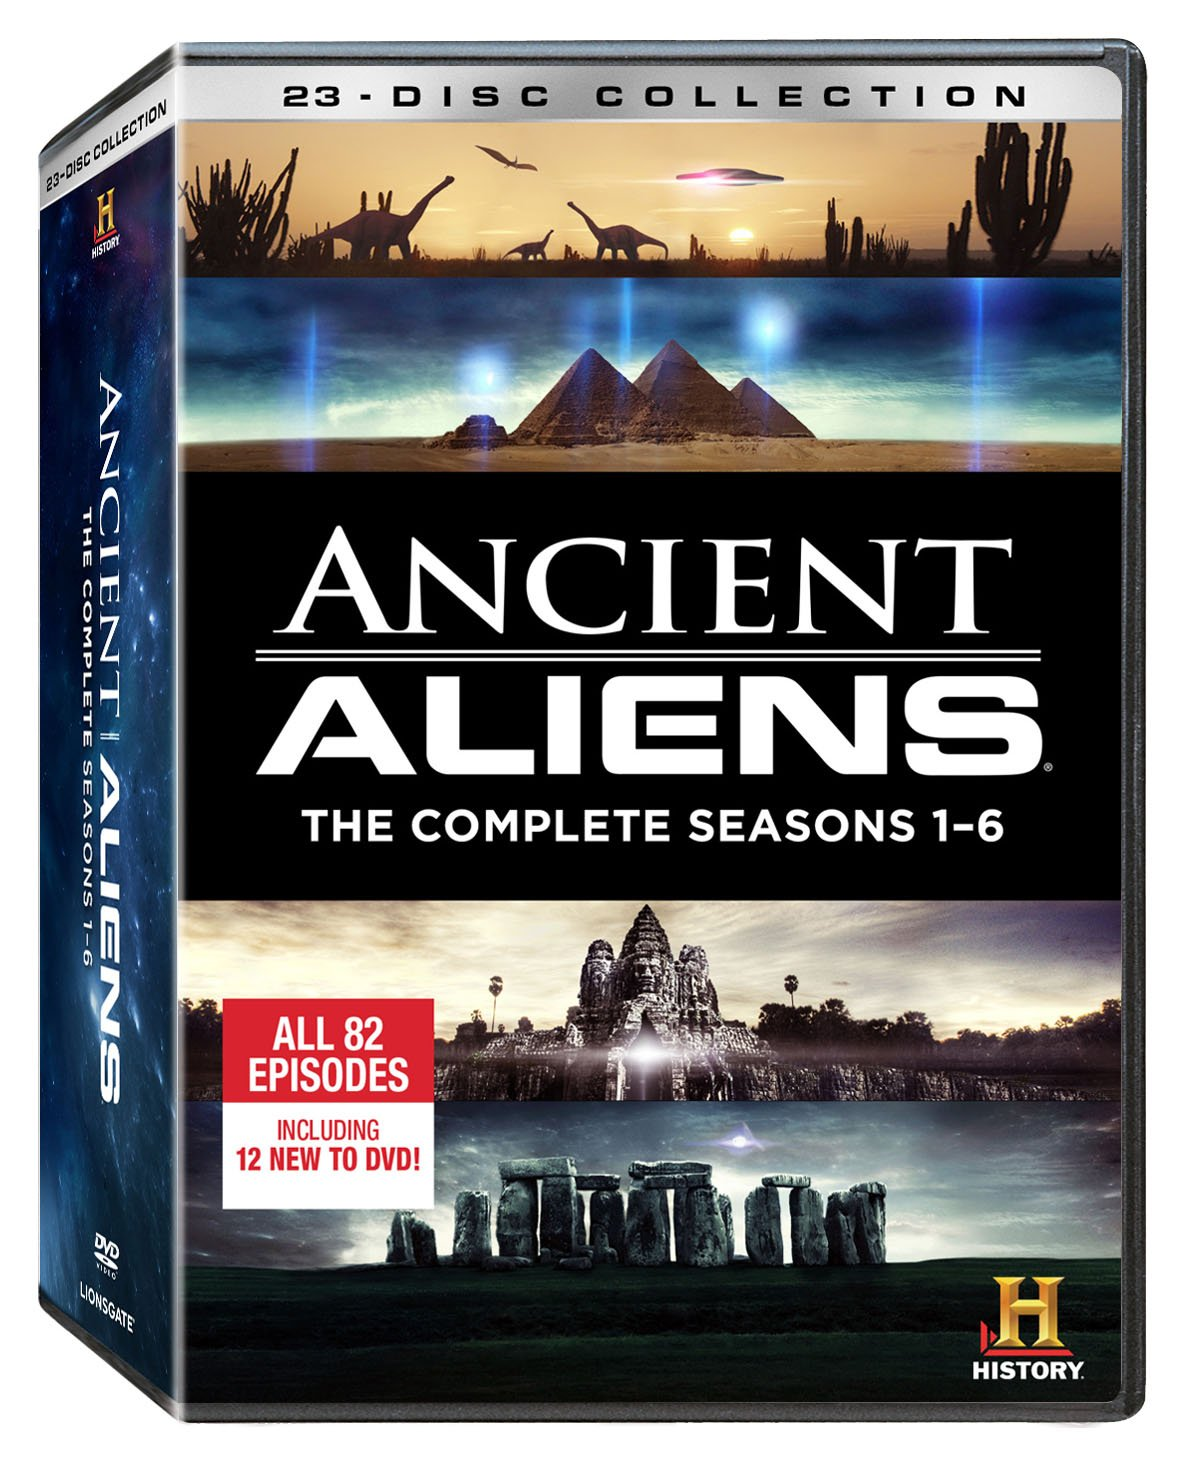 Ancient Aliens: The Complete Seasons 1-6 [DVD] by LIONSGATE